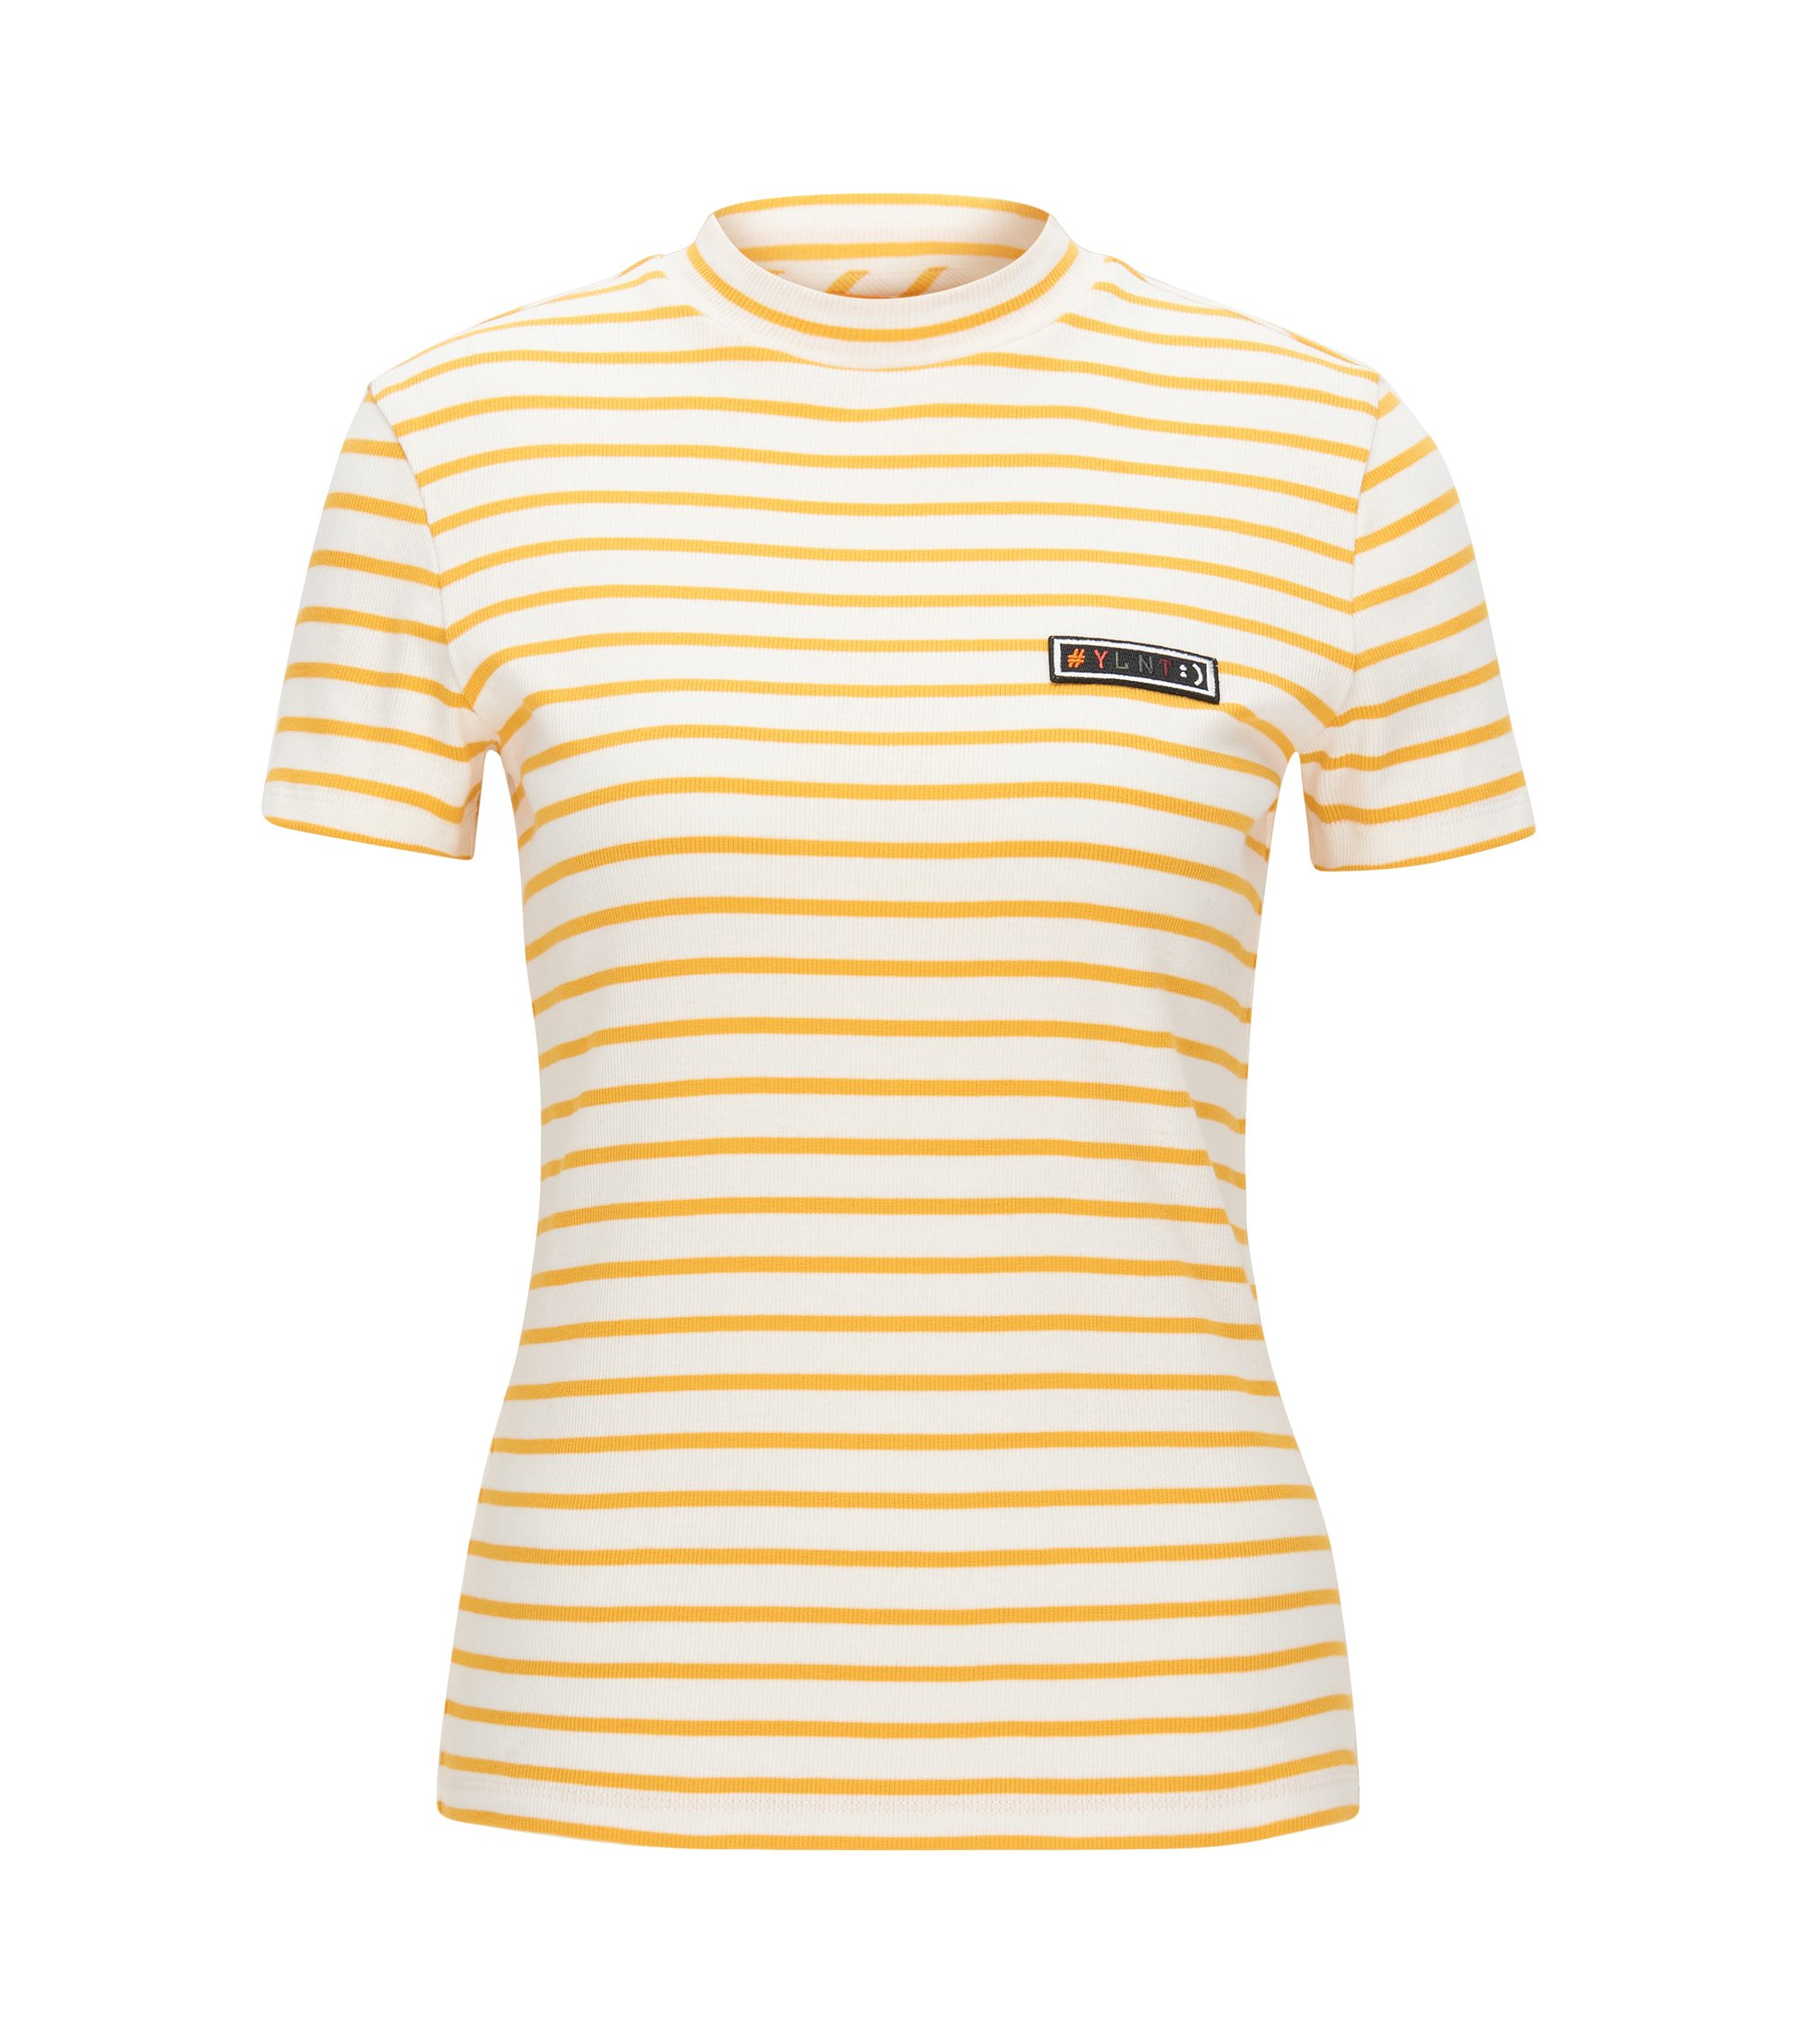 Slim-fit T-shirt in striped rib jersey, Gold